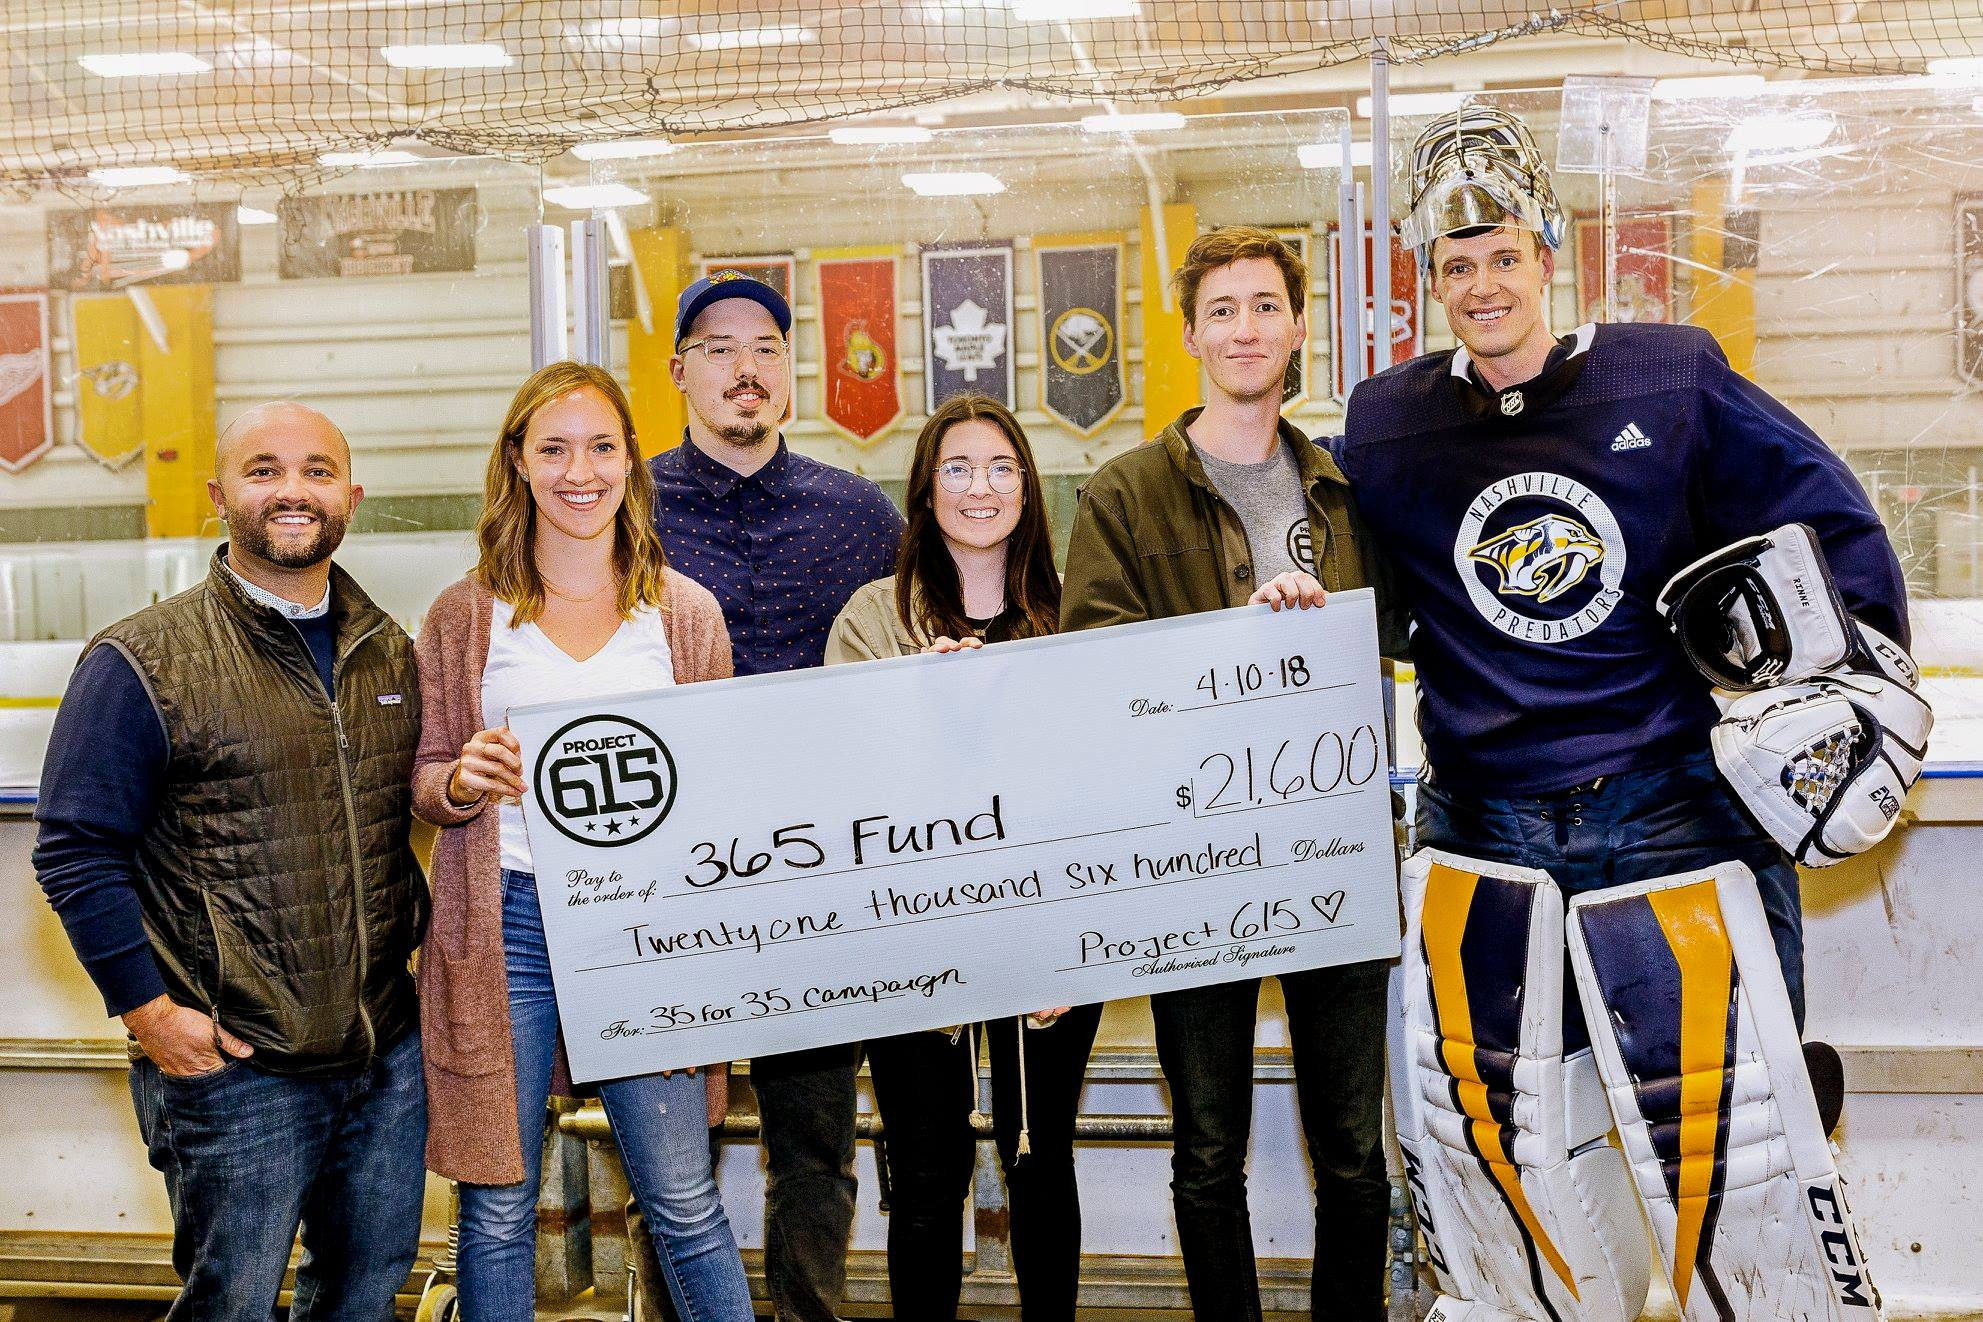 Over $21,000 was raised to go towards Pediatric Cancer research. Special thanks to Nashville Preds player, Pekka Rinne, for getting behind this cause with the 365 Fund!